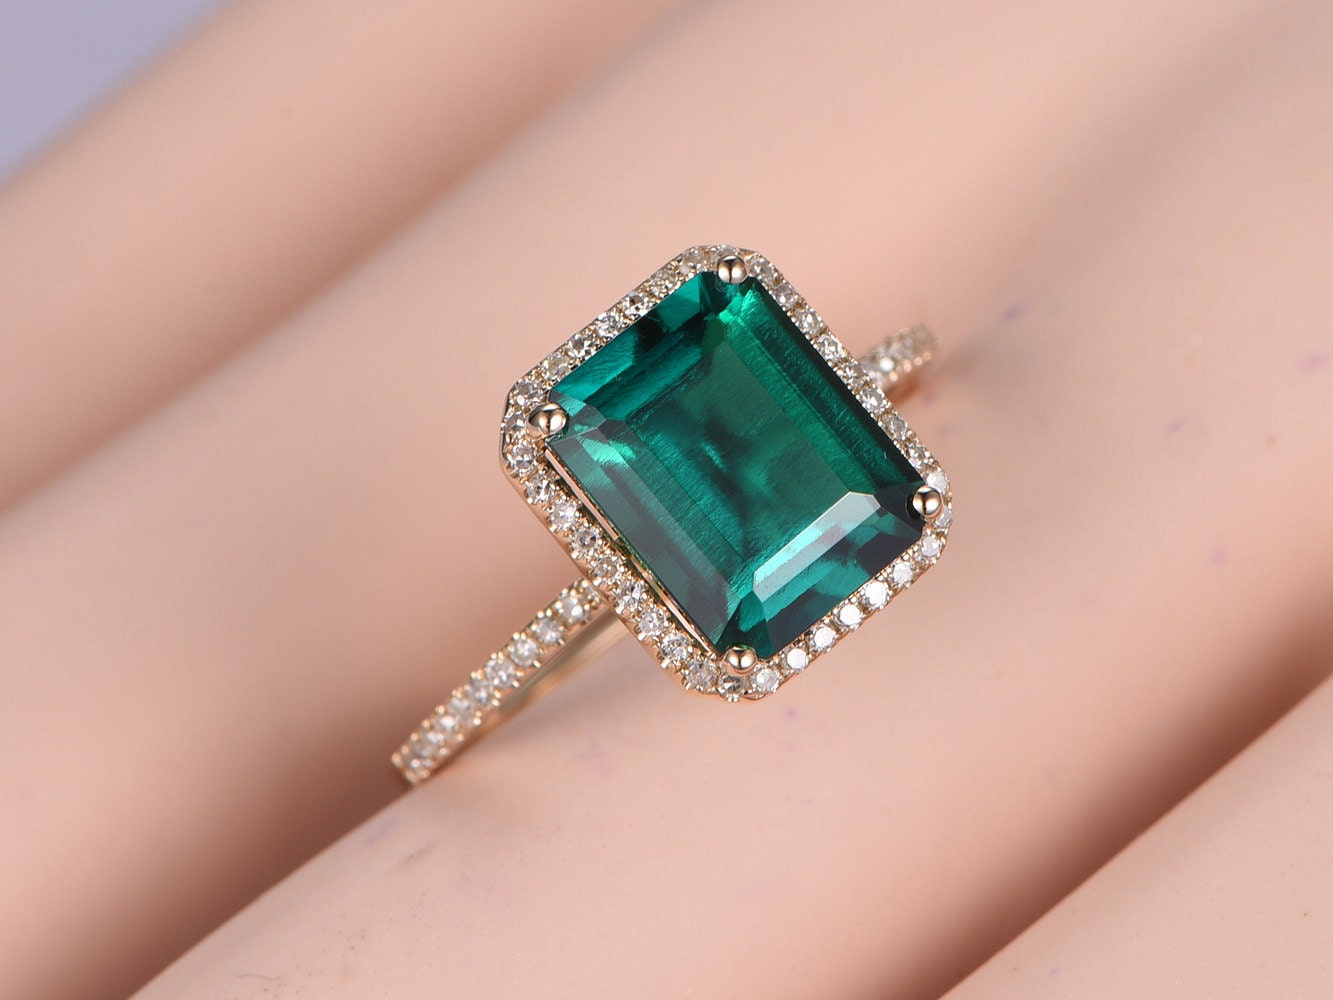 10x8mm Emerald Diamond Ring,Engagement Ring,Diamond Wedding Band,14k ...